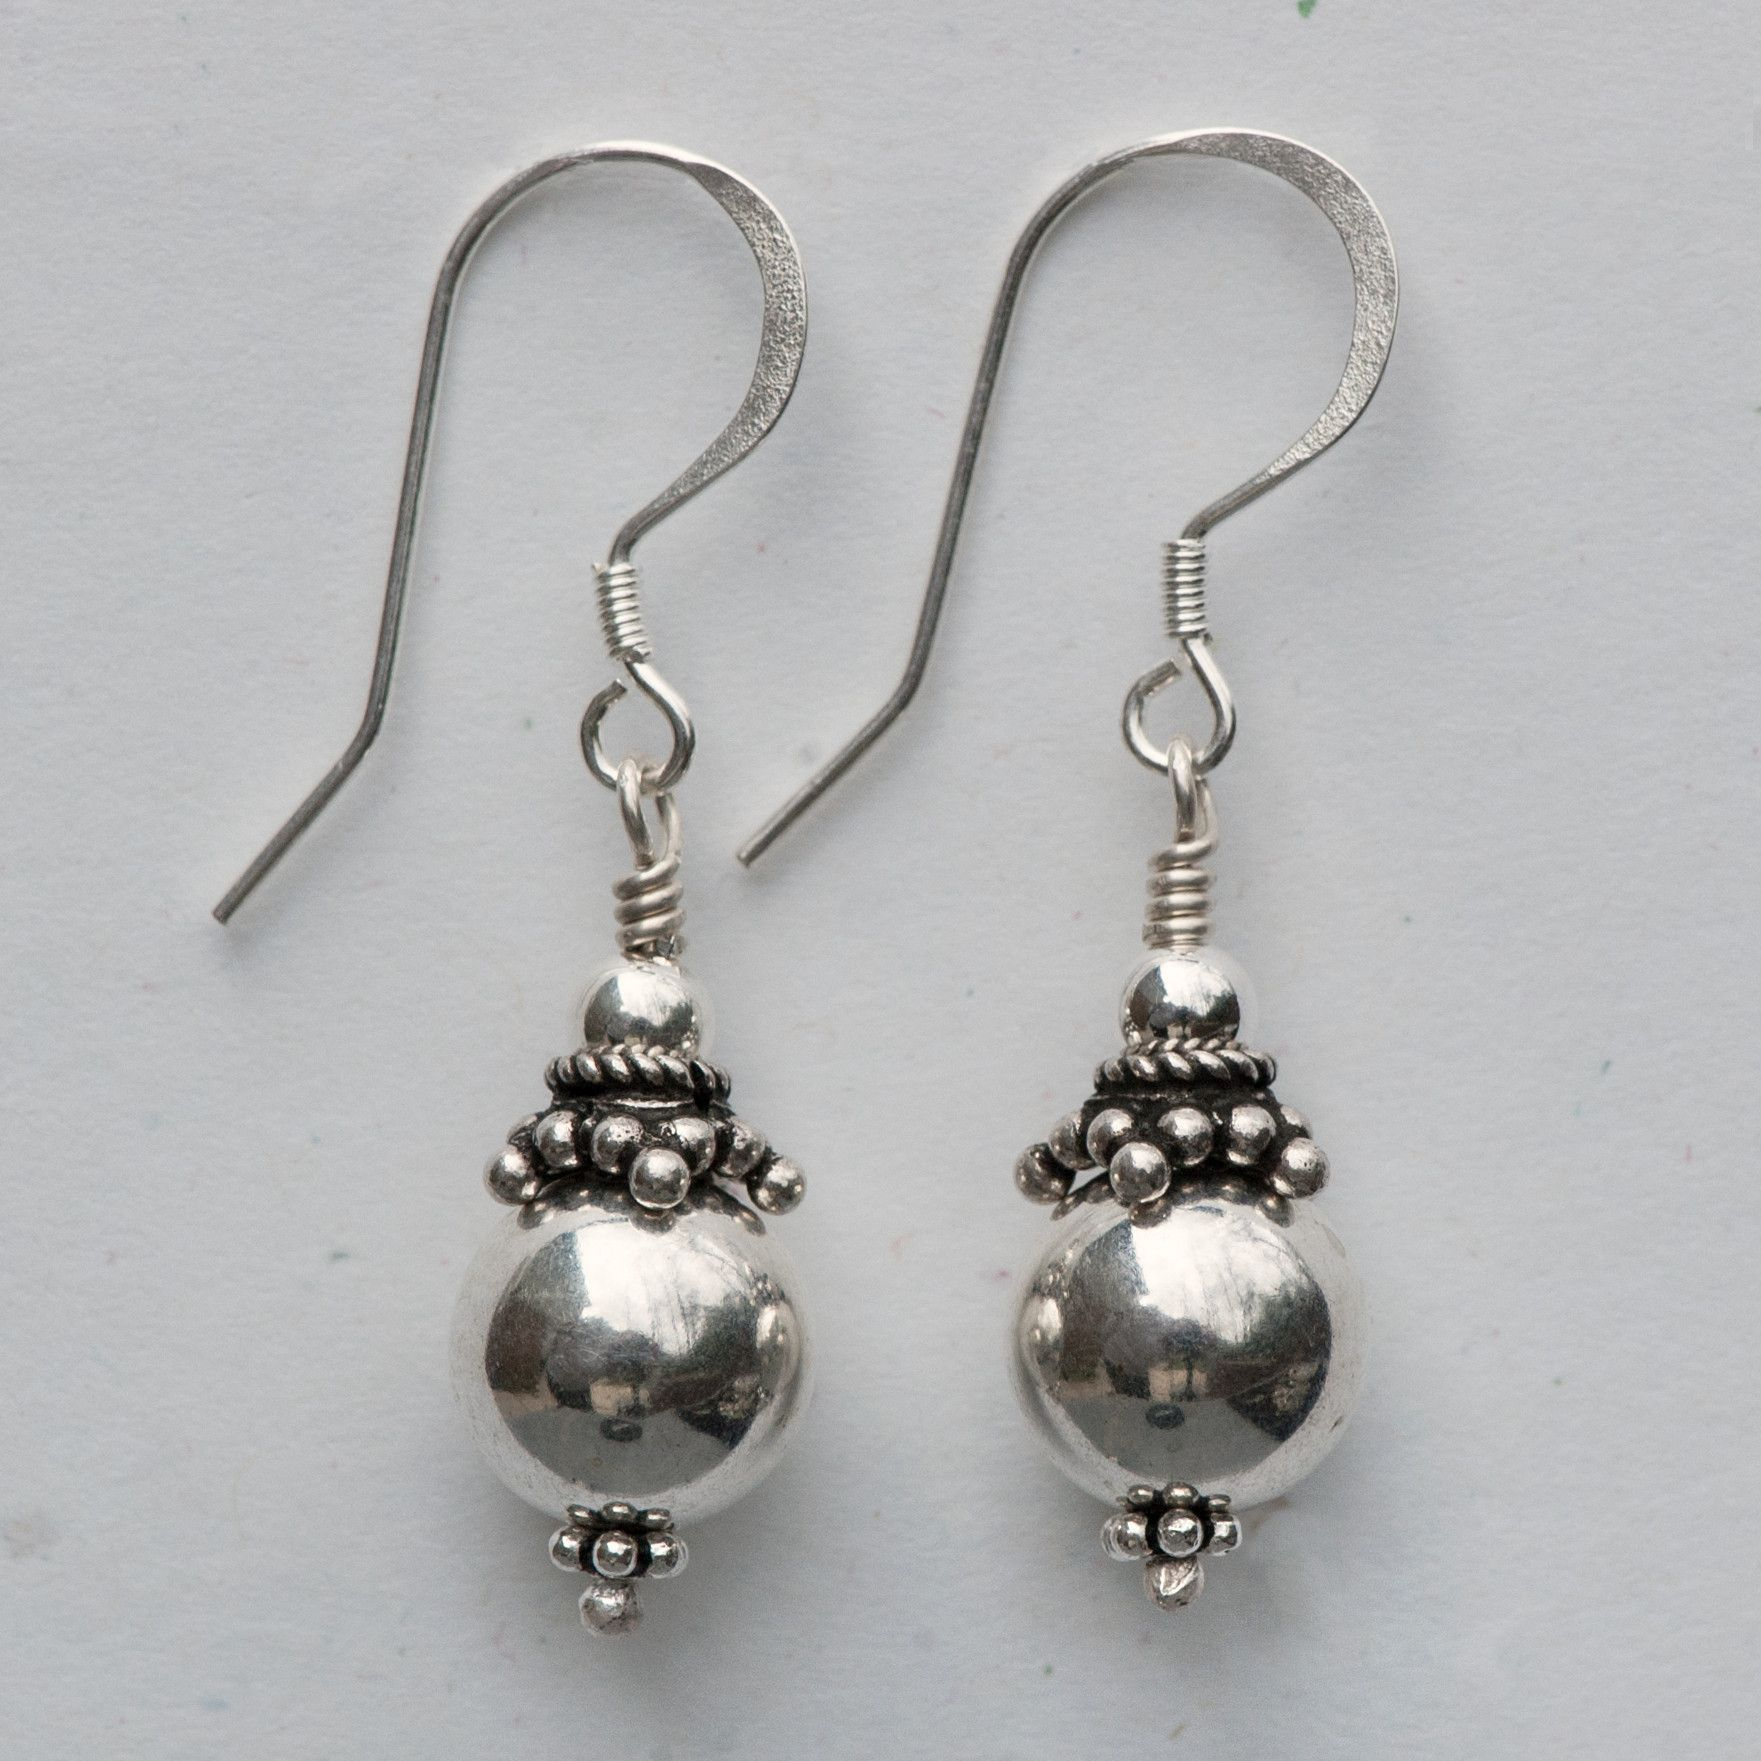 Sterling Silver Earrings | Beads, Sterling silver earrings and ...